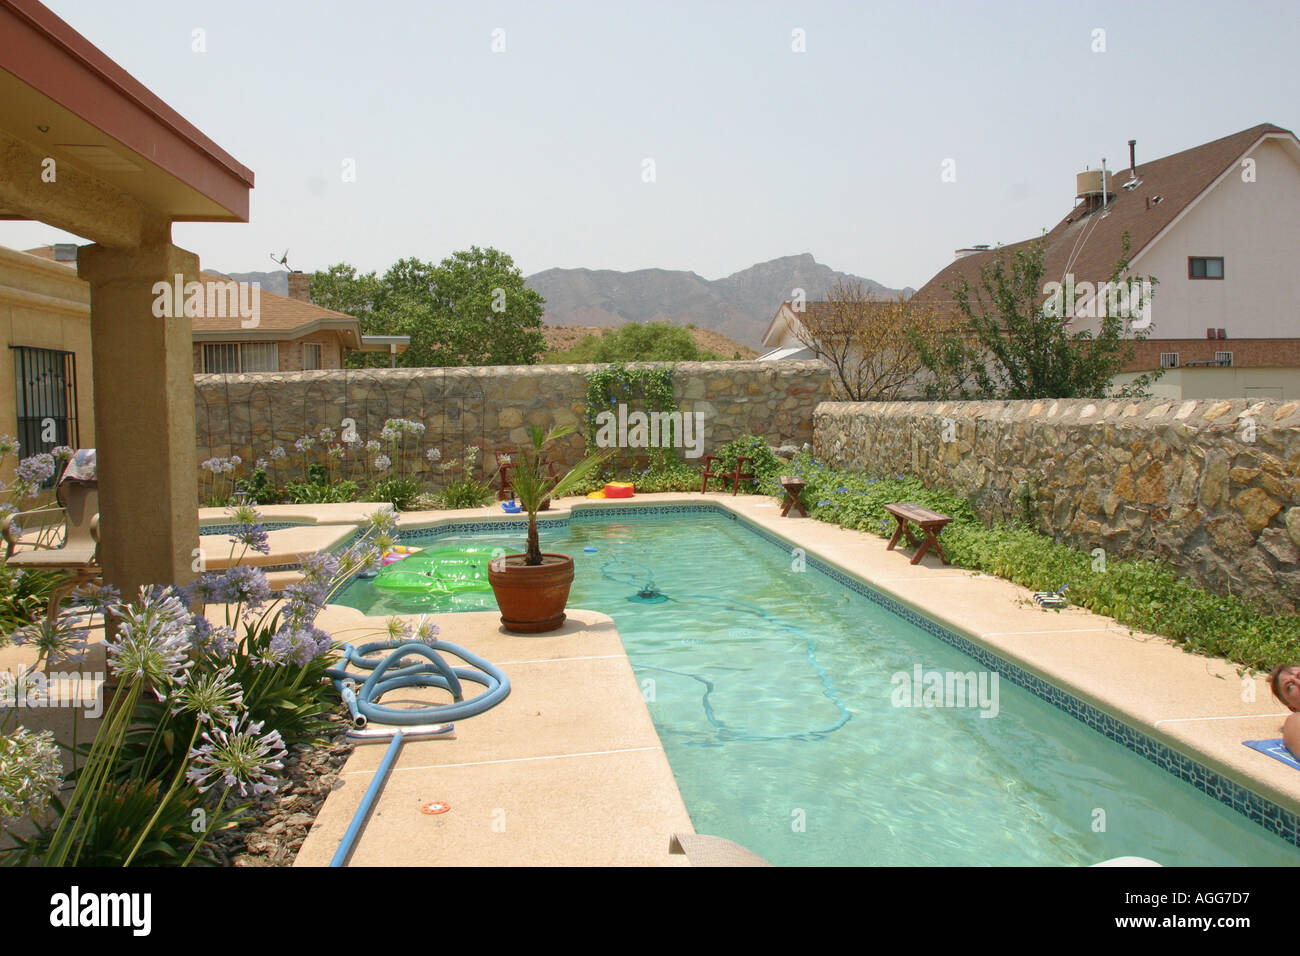 Outdoor pool in el paso texas with mountains in background for Pool design el paso tx